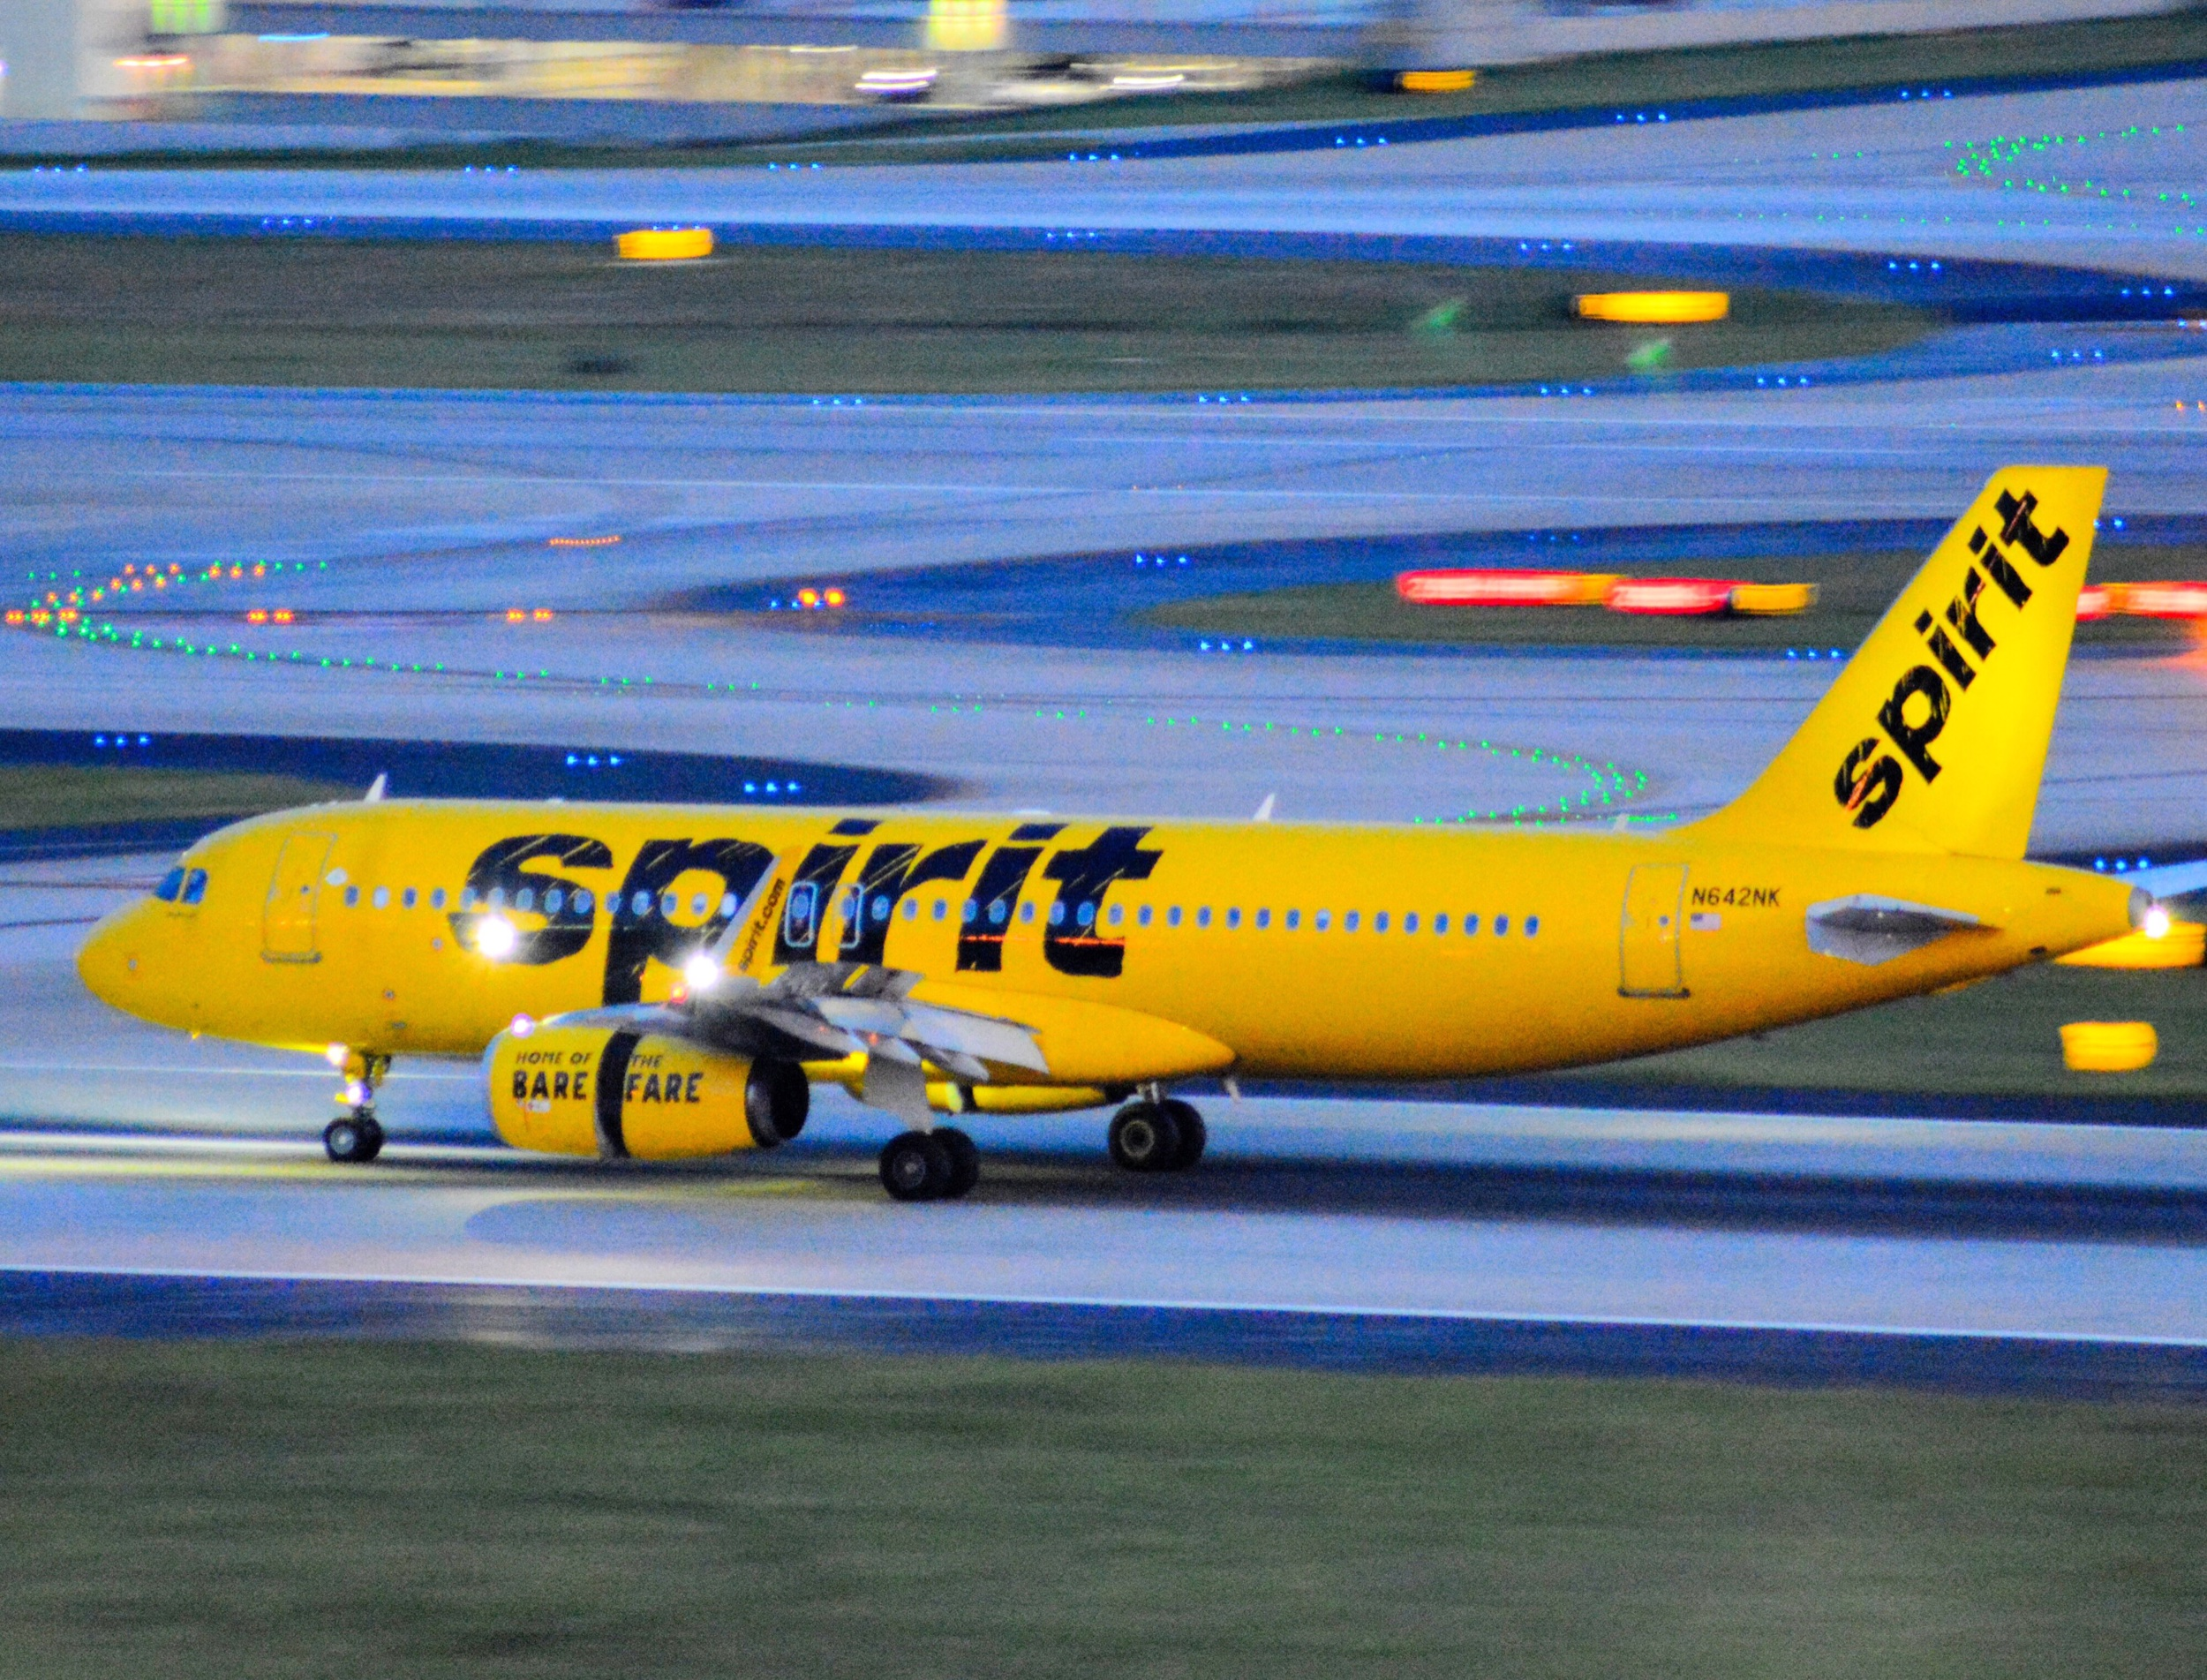 AIRCRAFT FLEET - Spirit operates a large fleet of narrow-body aircraft. Get detailed information about each plane, and see cabin and exterior photos.